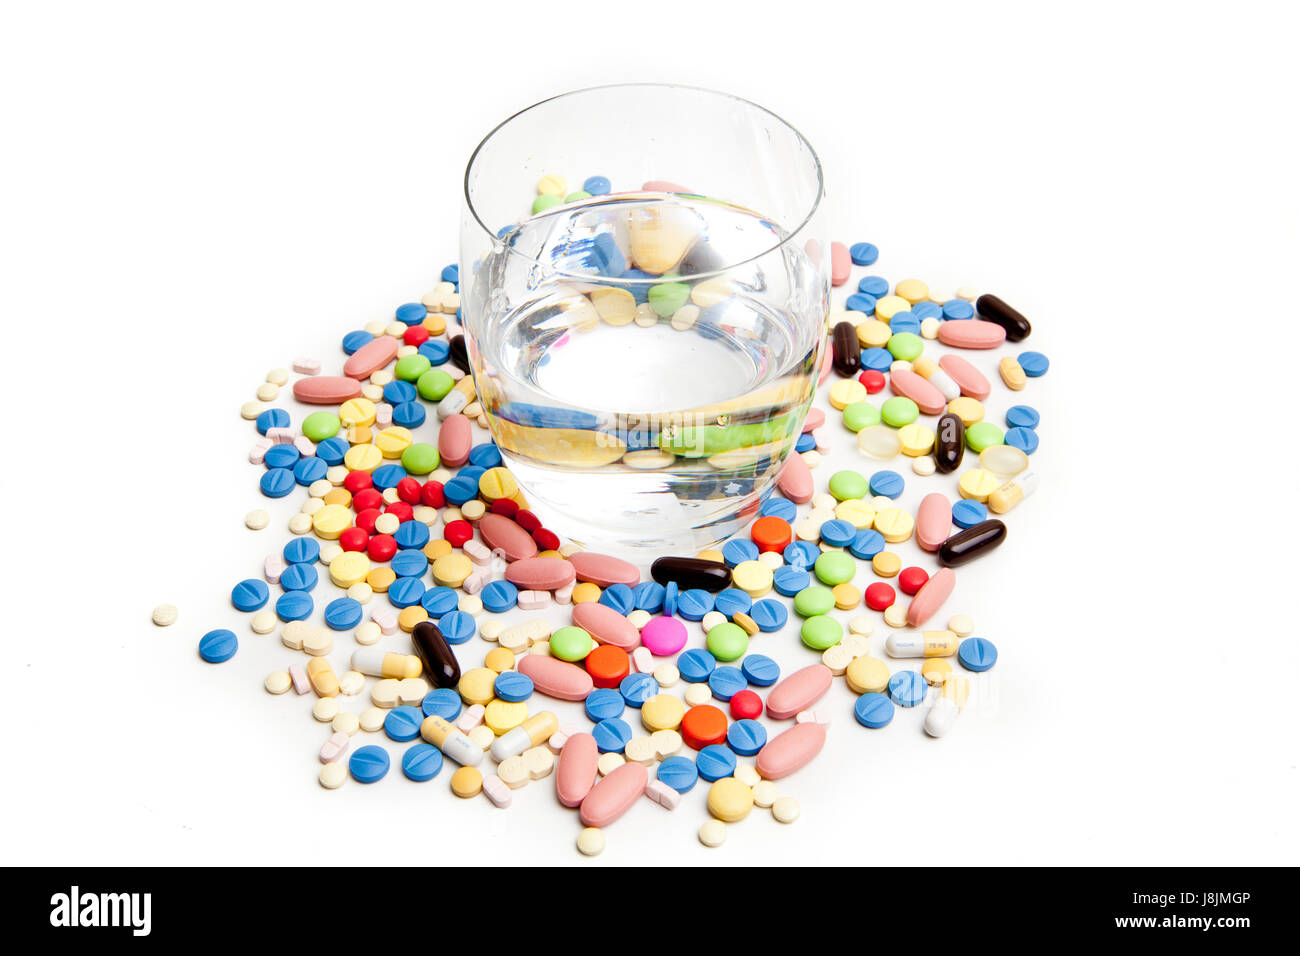 material, drug, anaesthetic, addictive drug, medicament, means, agent, Stock Photo